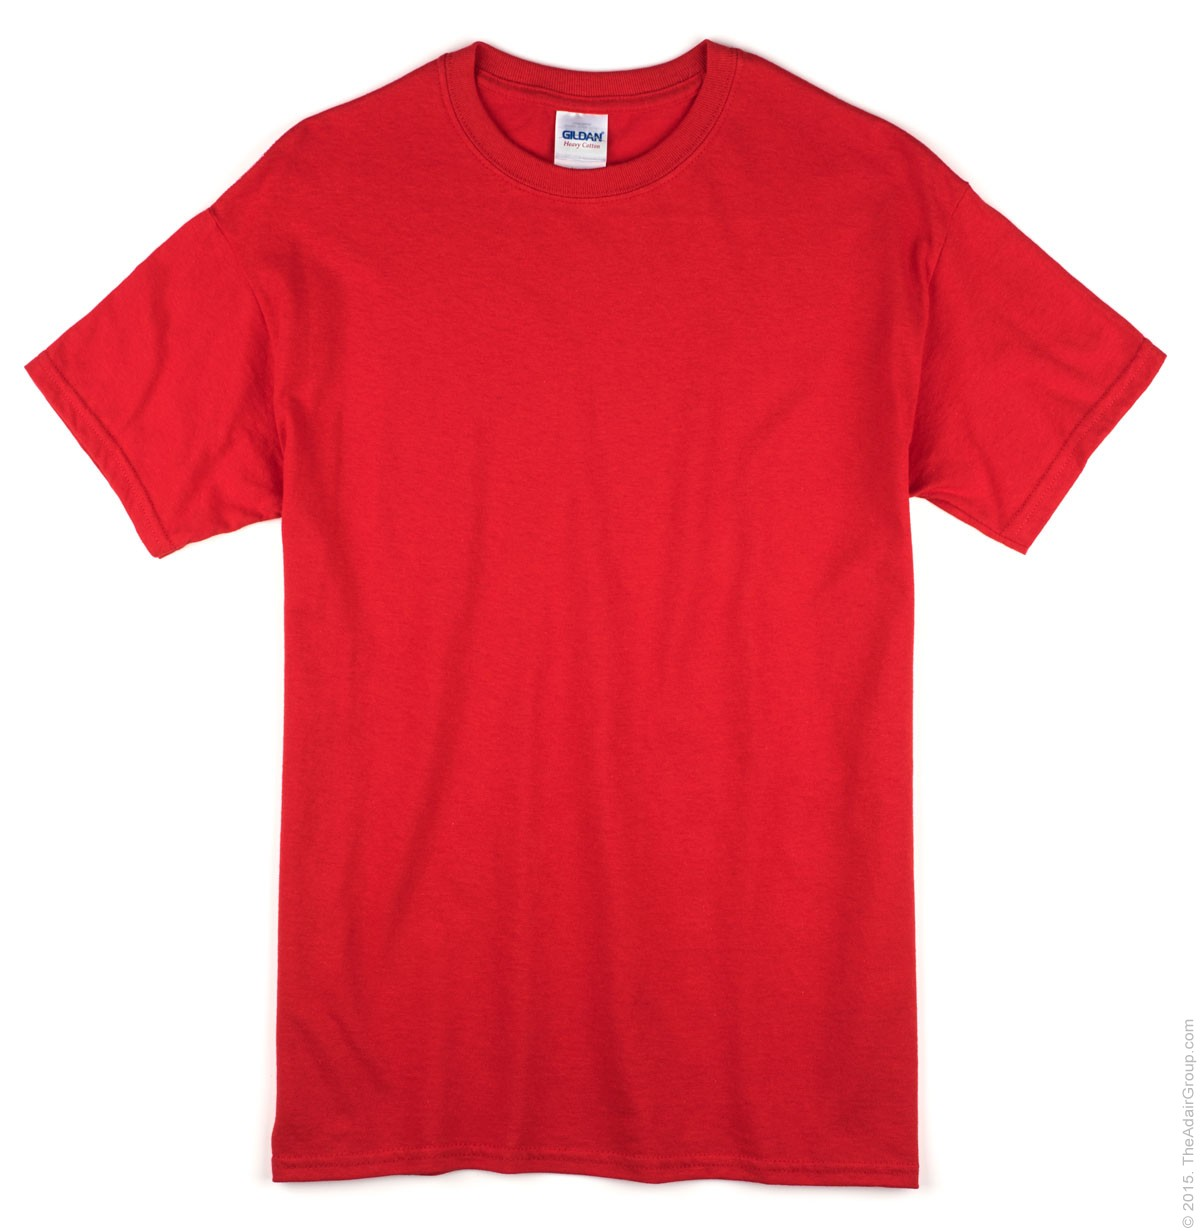 Buy blank red t shirt 63 off for Blank tee shirts com